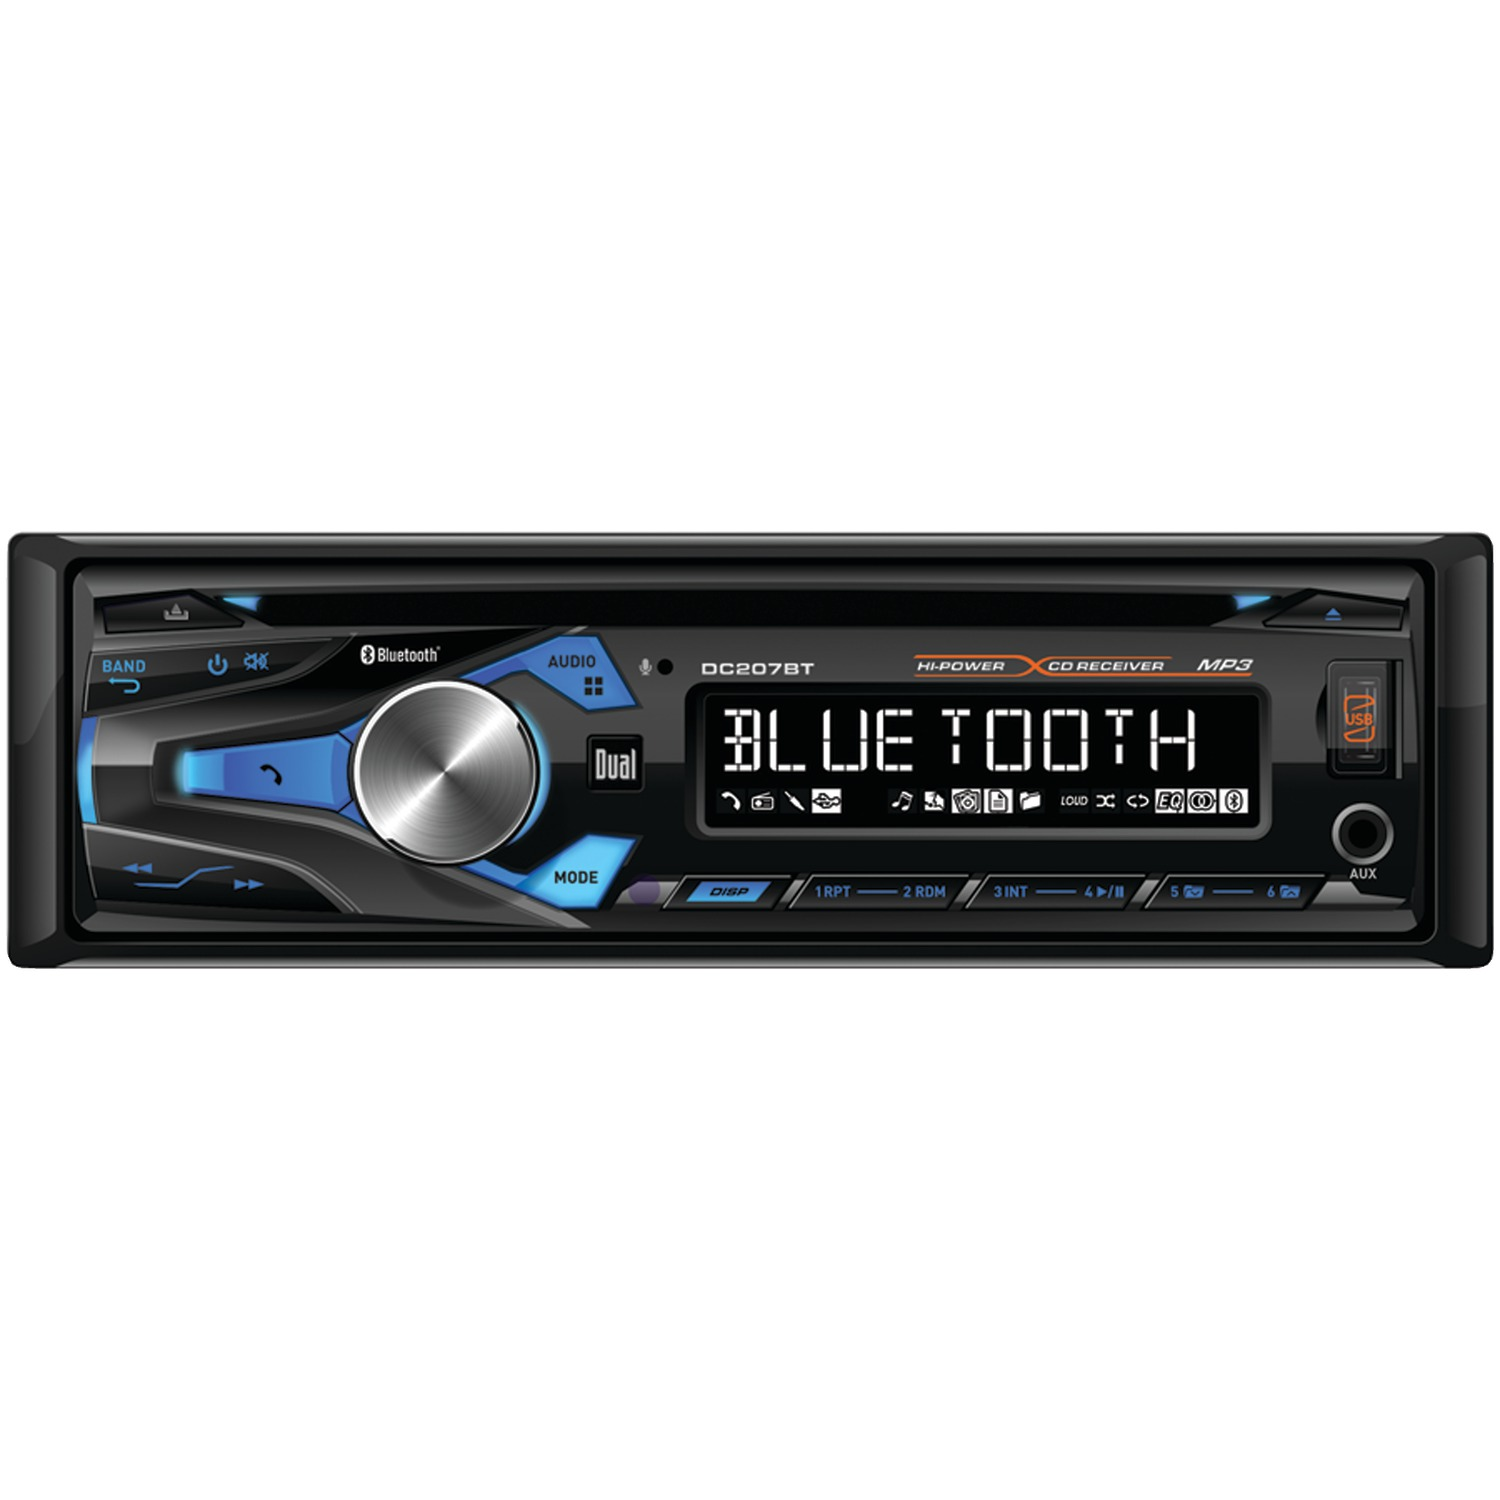 Xhdr6435 Cd Receiver Bluetooth Dual Wire Harness Dc207bt Single Din In Dash Am Fm With